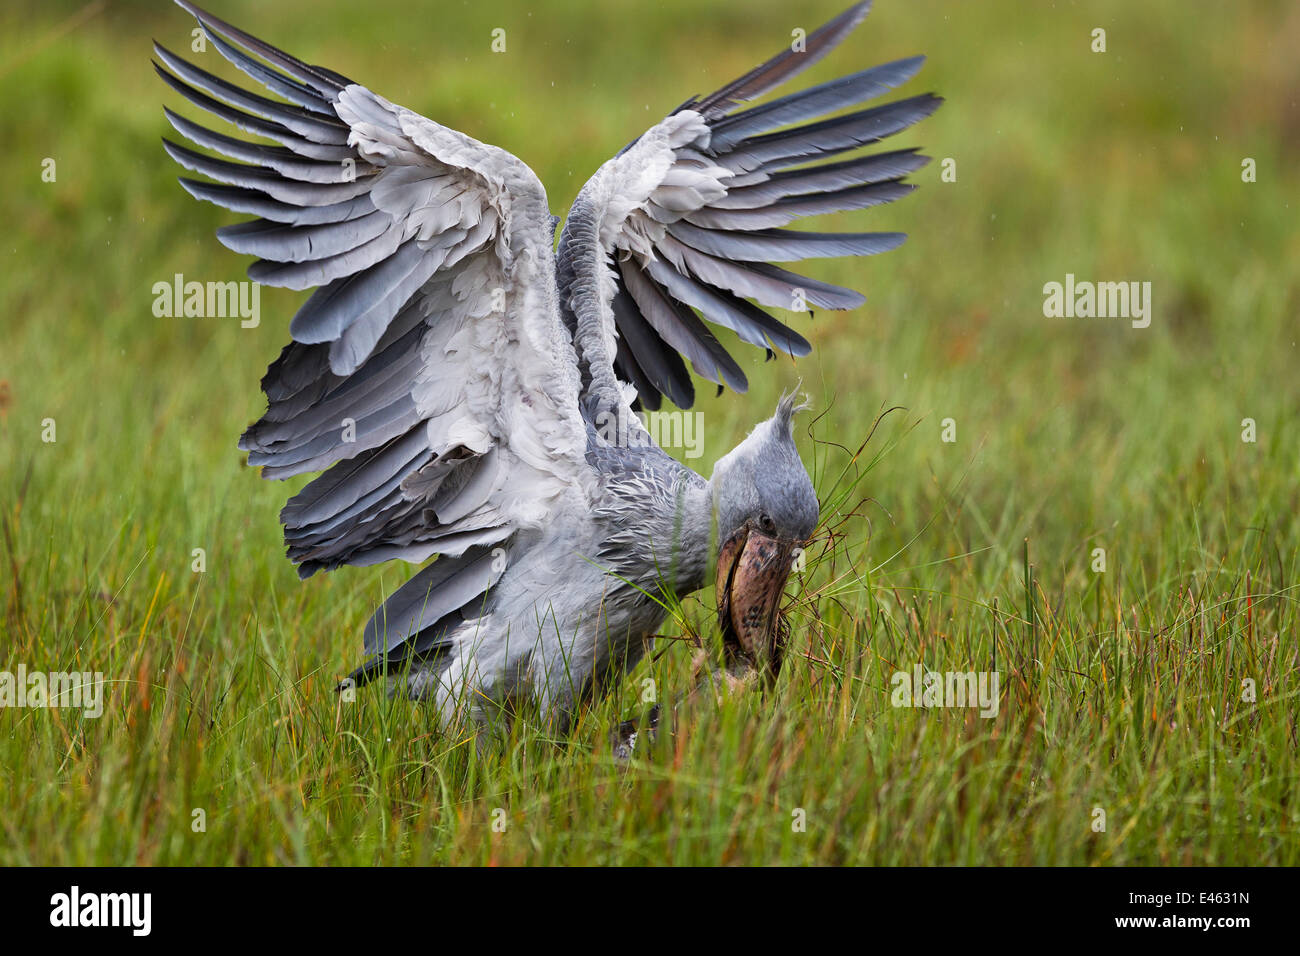 Whale headed / Shoebill stork (Balaeniceps rex) catching a Lungfish (Protoperus sp) in the swamps of Mabamba, Lake - Stock Image